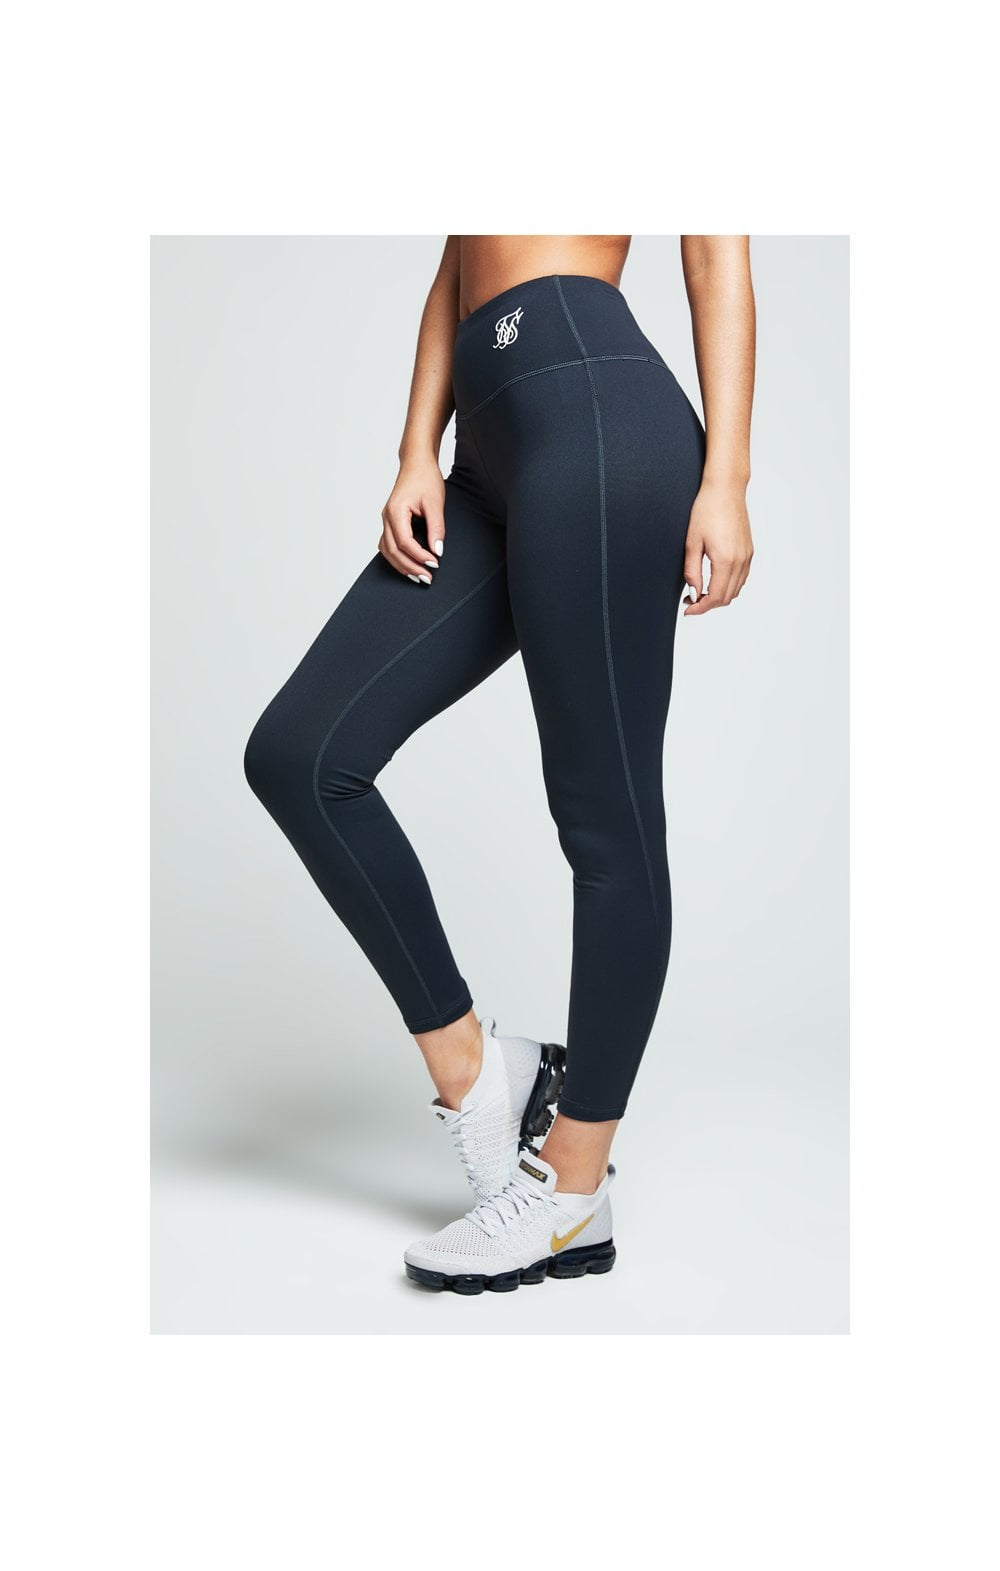 SikSilk Gym Leggings – Charcoal (1)